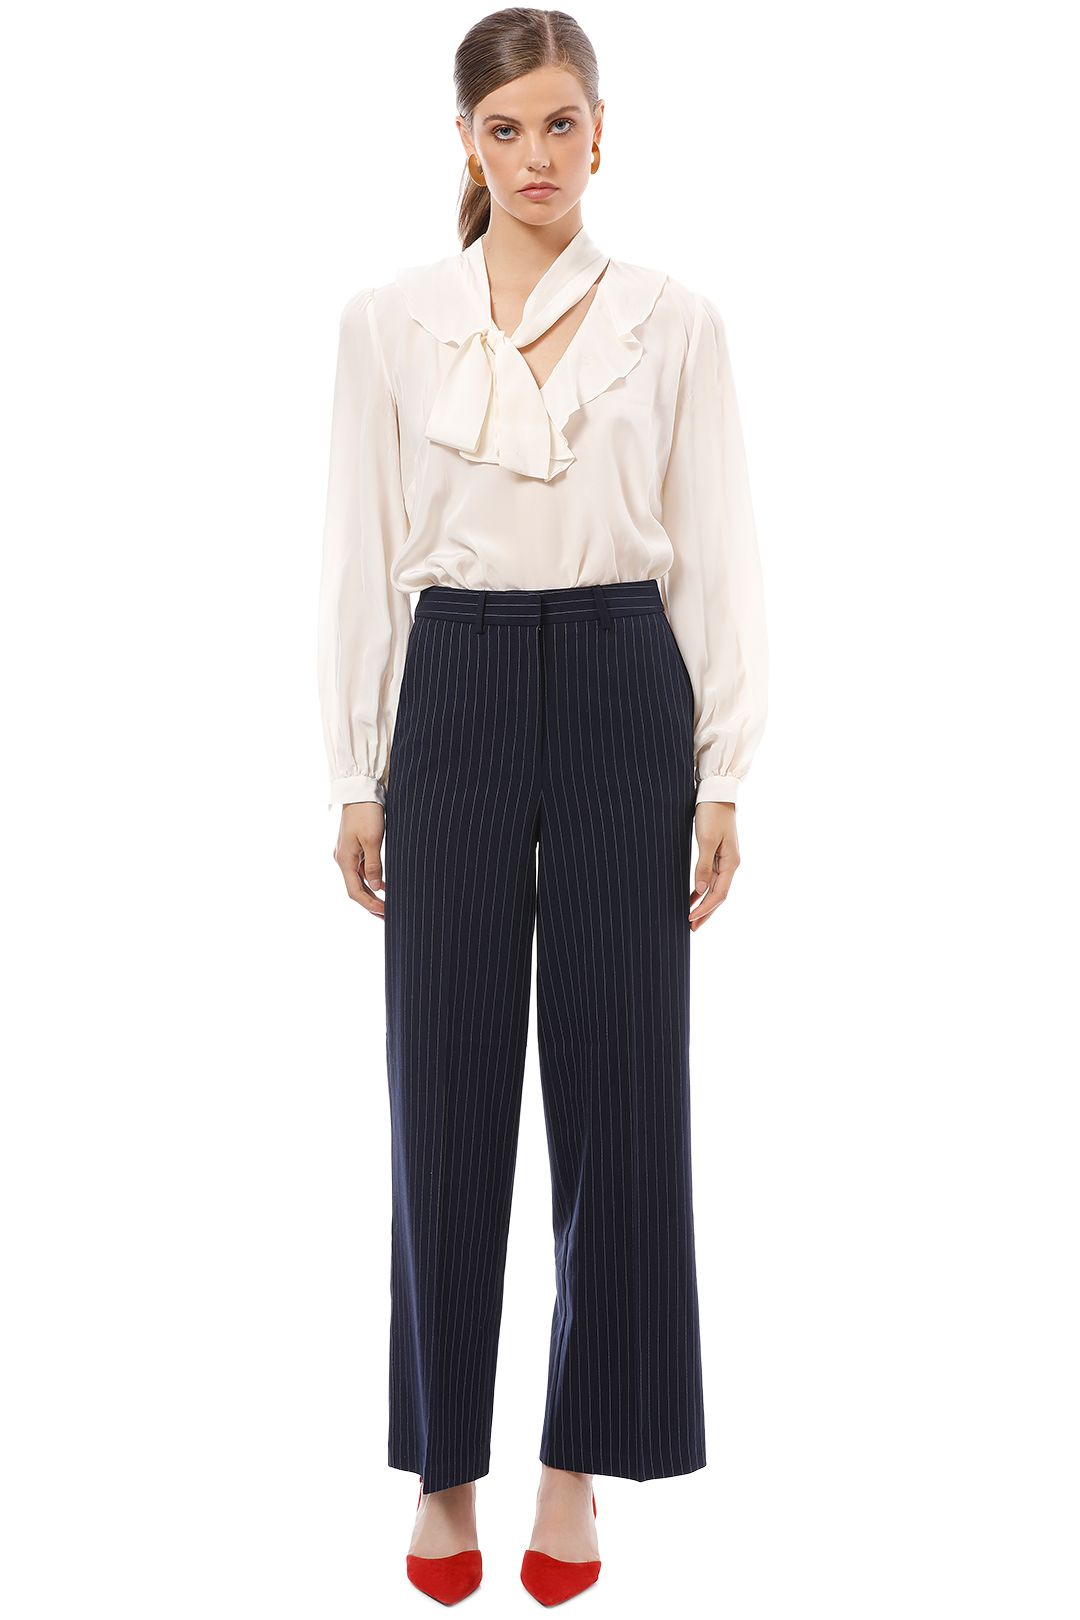 Friend of Audrey - Cecile Striped Wide-Leg Pants - Navy - Front